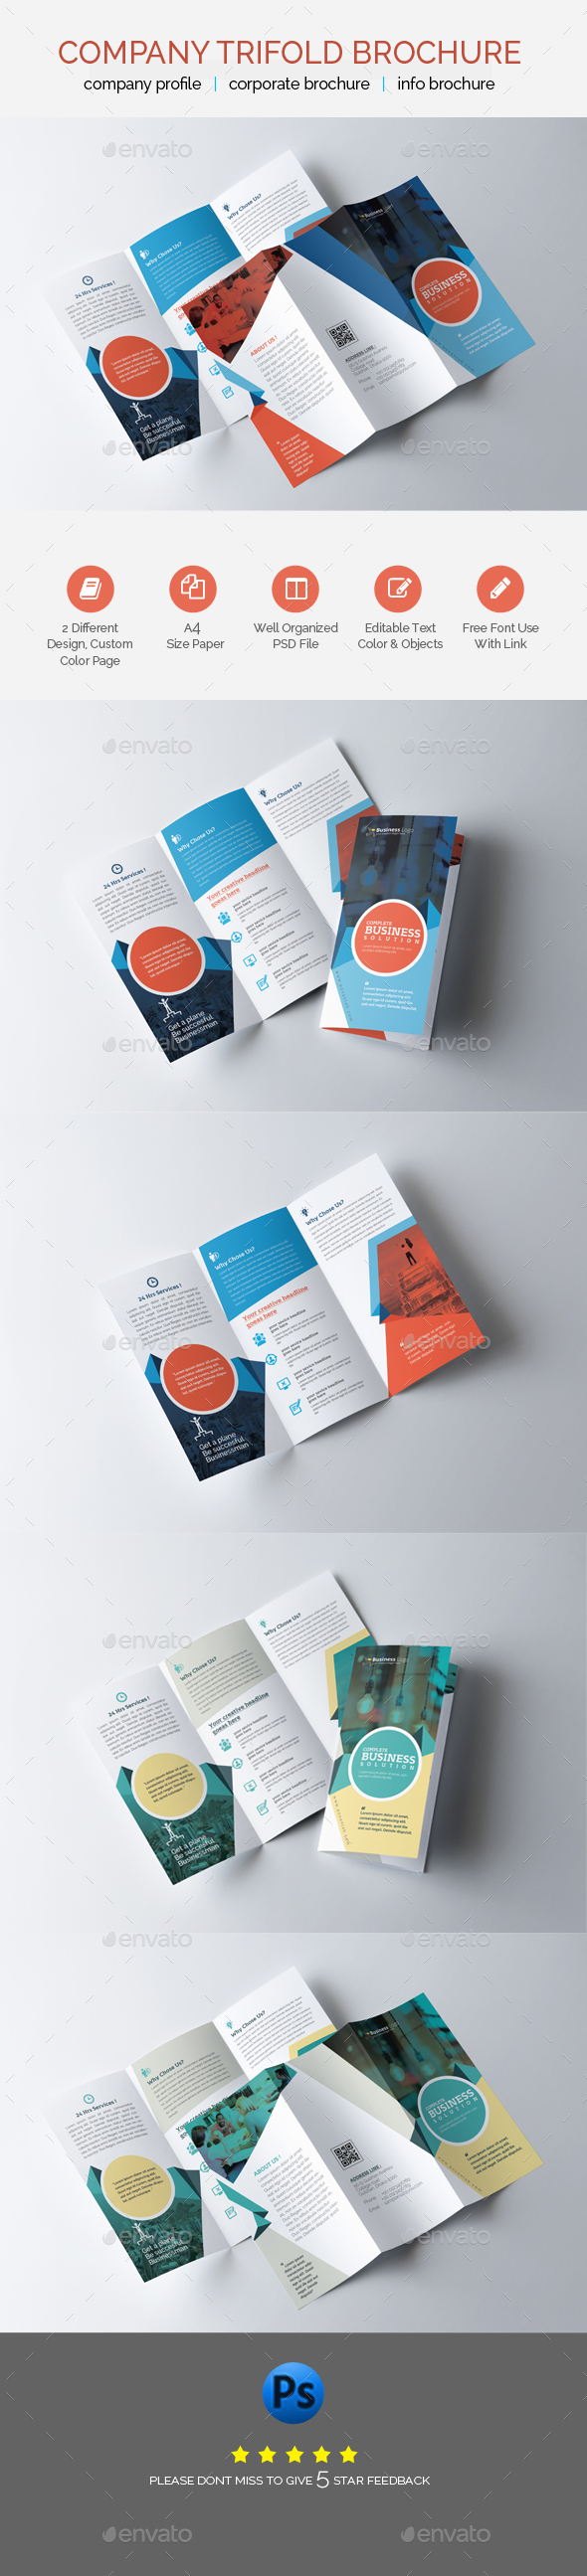 Professional Business Trifold Brochure Template - Brochures Print Templates